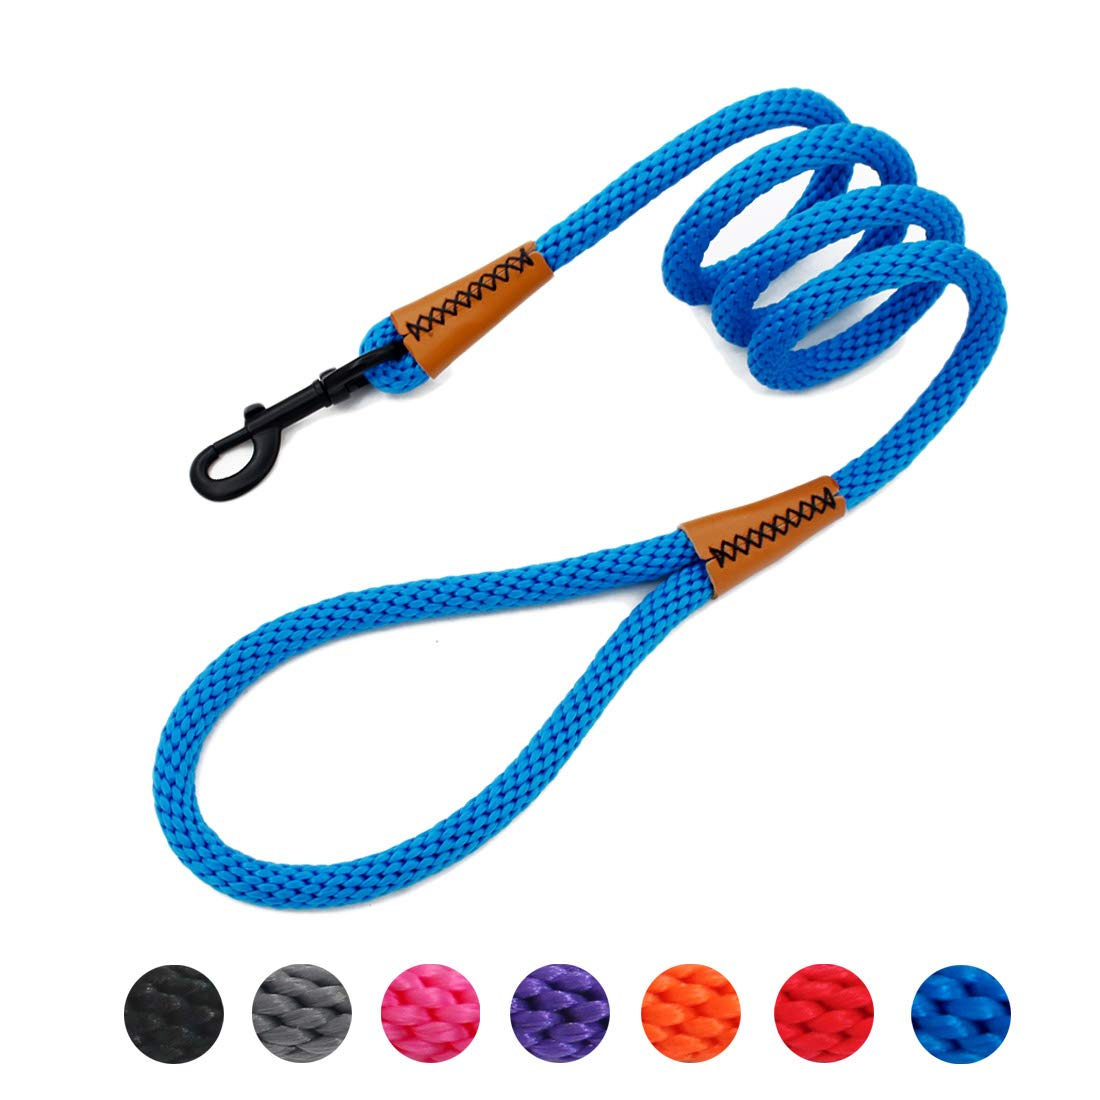 lynxking Braided Dog Leashes Rope Pet DogLeash Dog Traction Rope Leashes Dog Walking Training Lead for Medium Large Dogs (6Feet Royal Blue) by lynxking